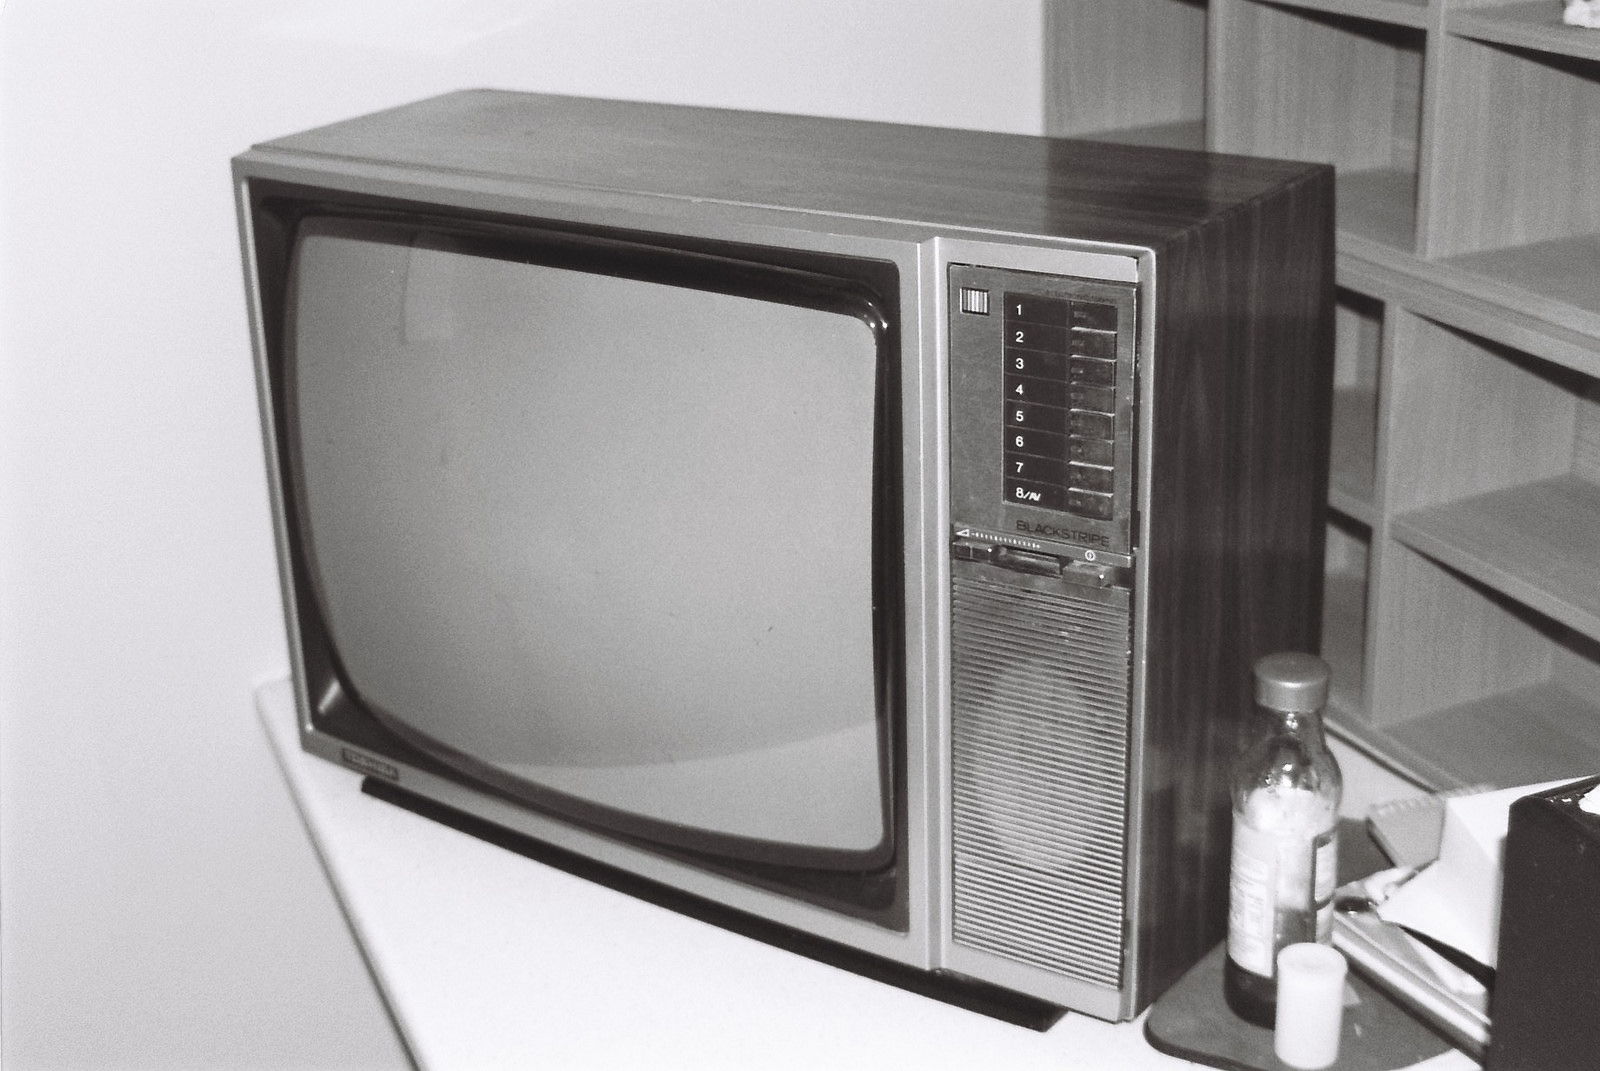 Old Toshiba Blackstripe television set by Matthew Paul Argall, licence: CC BY 2.0